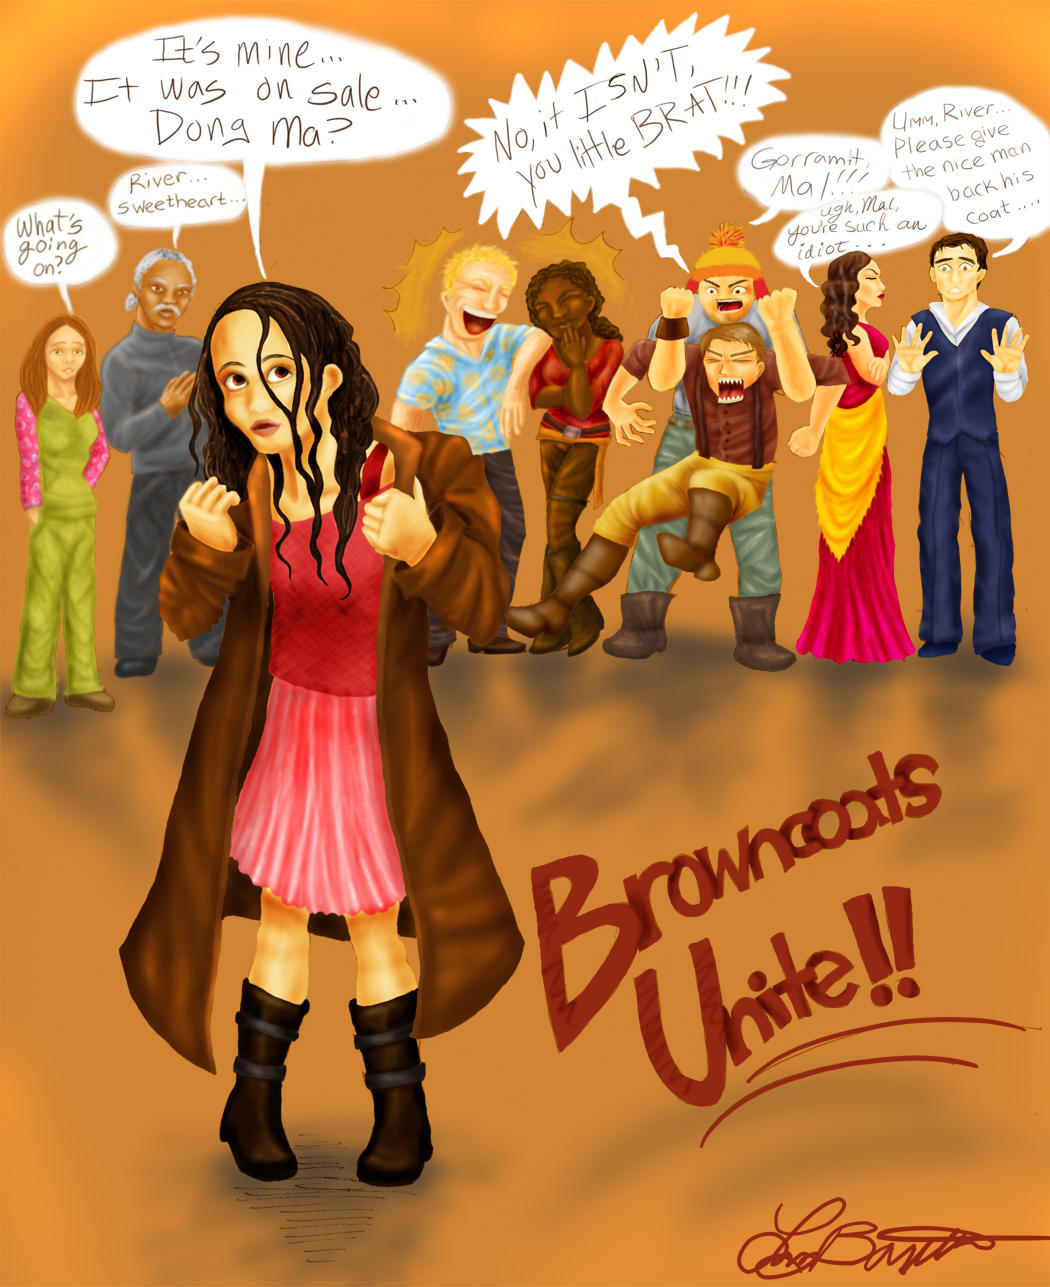 Browncoats Unite Submission by Aeternus-Spero